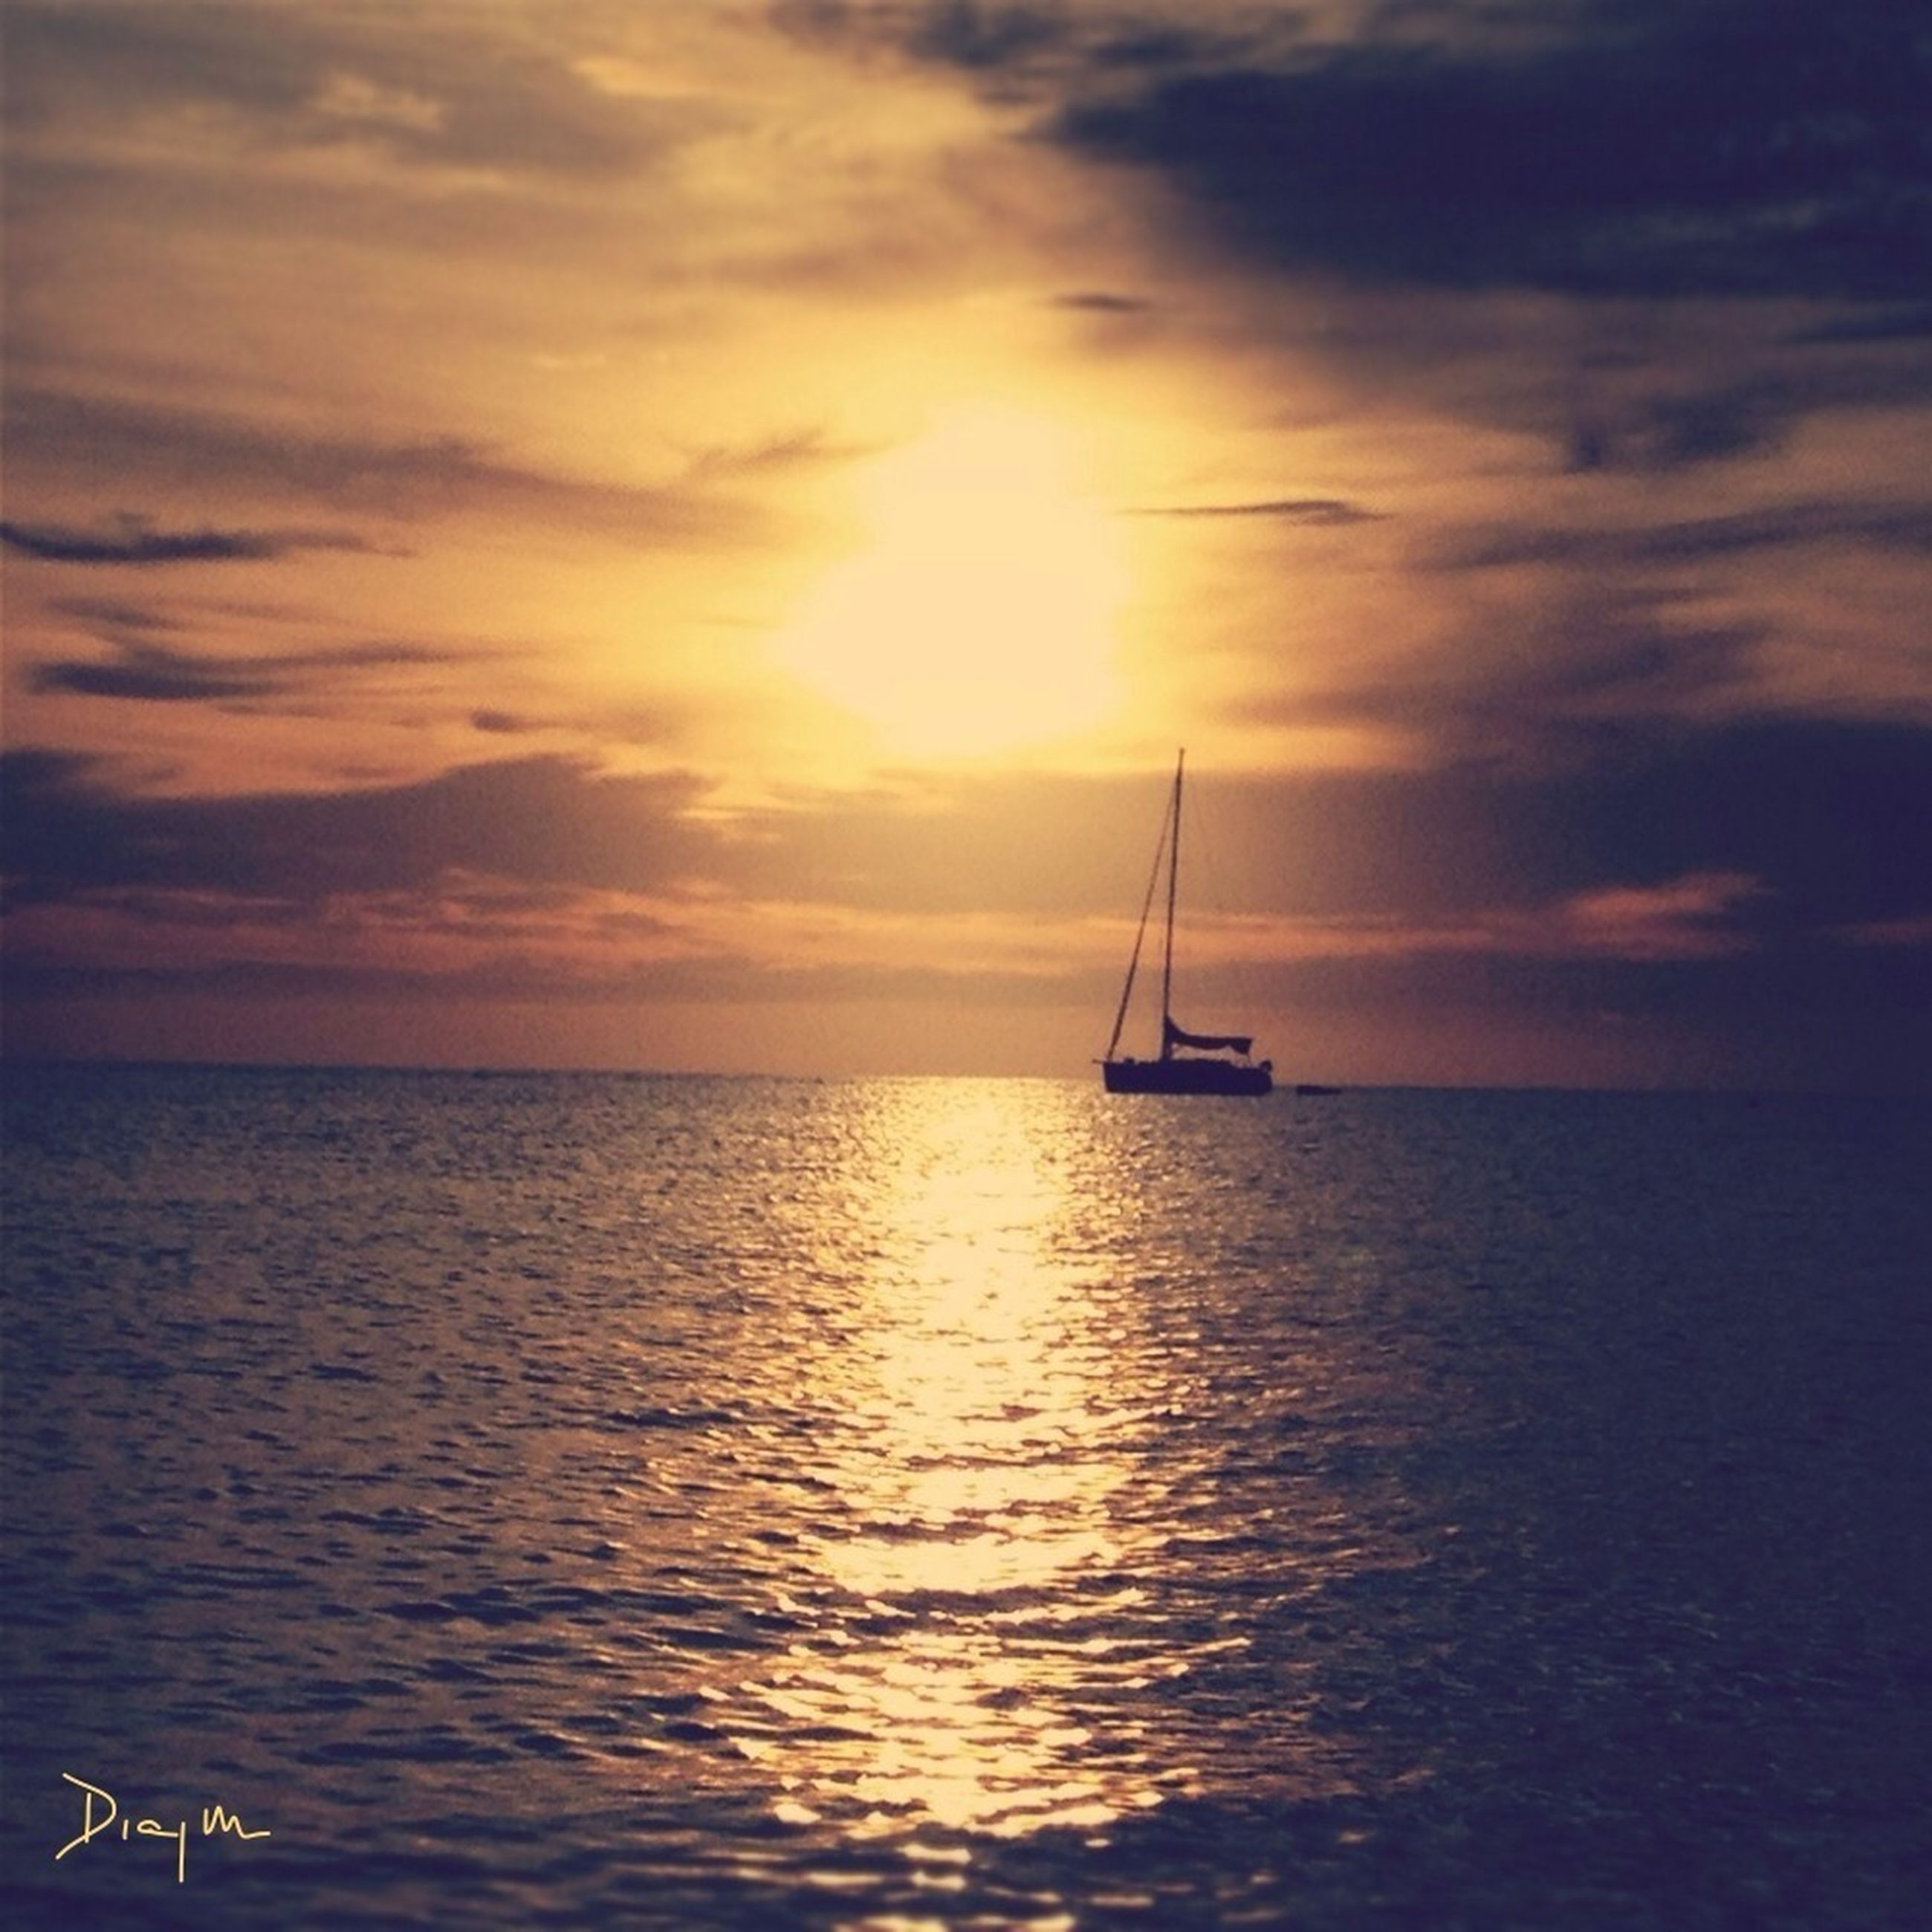 sea, sunset, nautical vessel, water, transportation, mode of transport, sky, boat, horizon over water, scenics, beauty in nature, tranquility, tranquil scene, waterfront, cloud - sky, sailboat, nature, orange color, sun, sailing